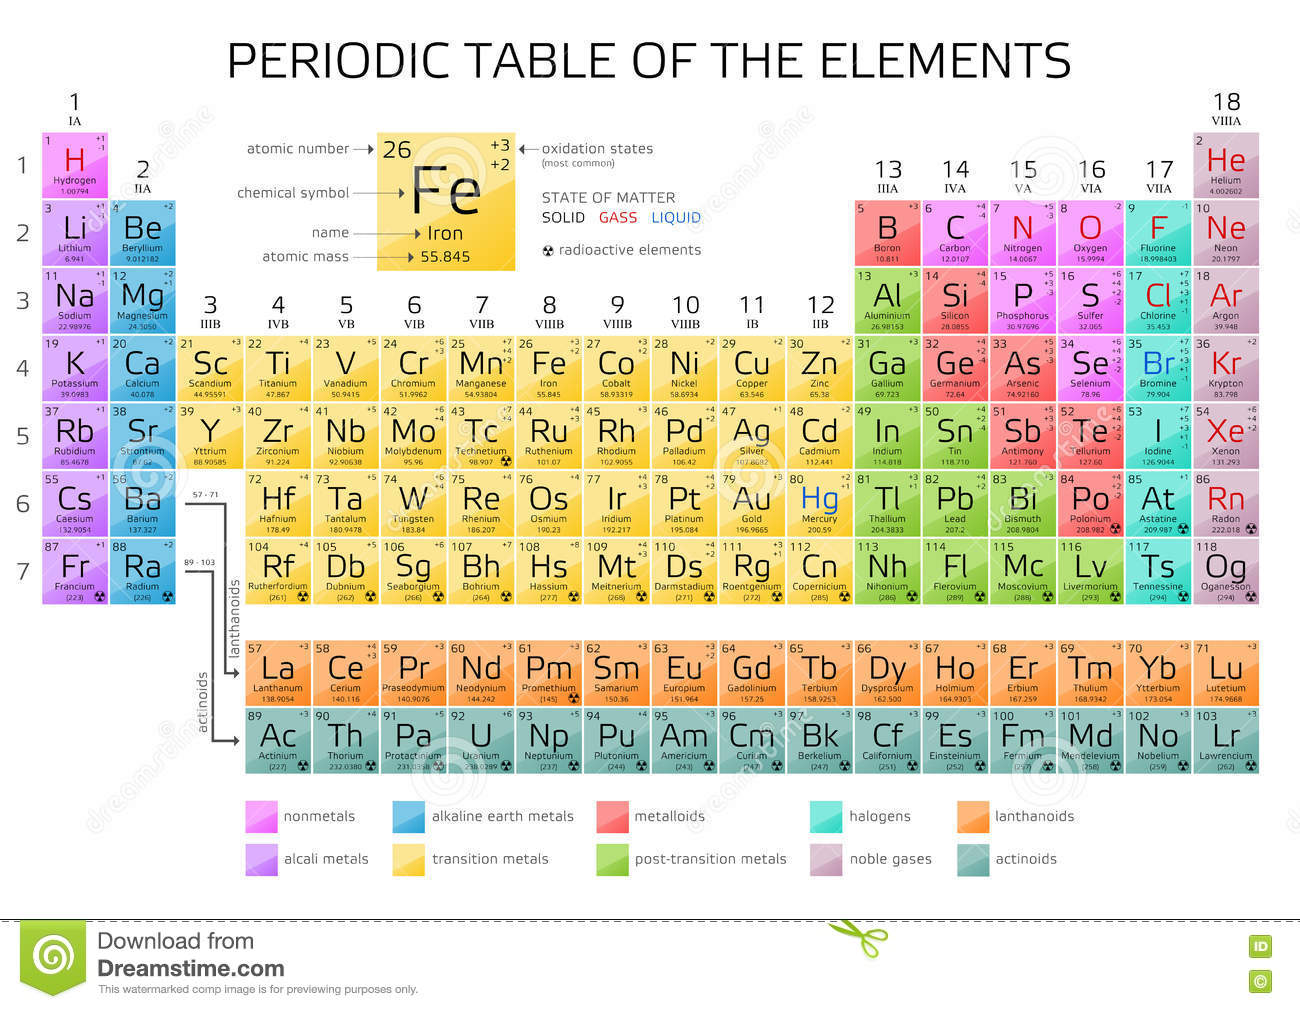 Spdf on periodic table images periodic table images modern periodic table of elements pdf images periodic table images modern periodic table of elements with gamestrikefo Image collections